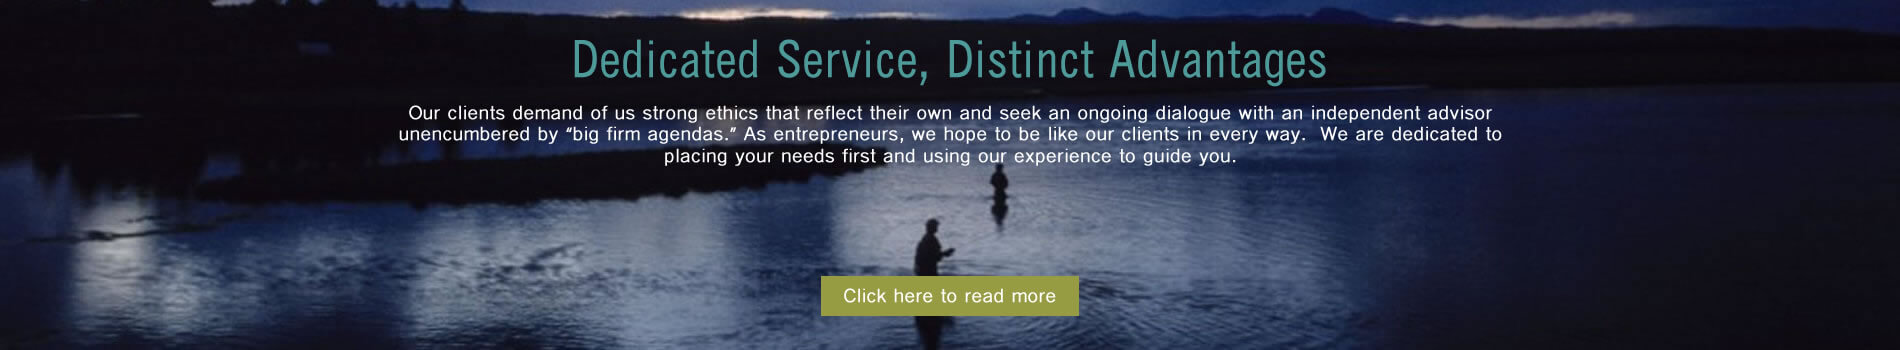 Banner image stating Cribstone Capital offers dedicated service and distinct advantages.